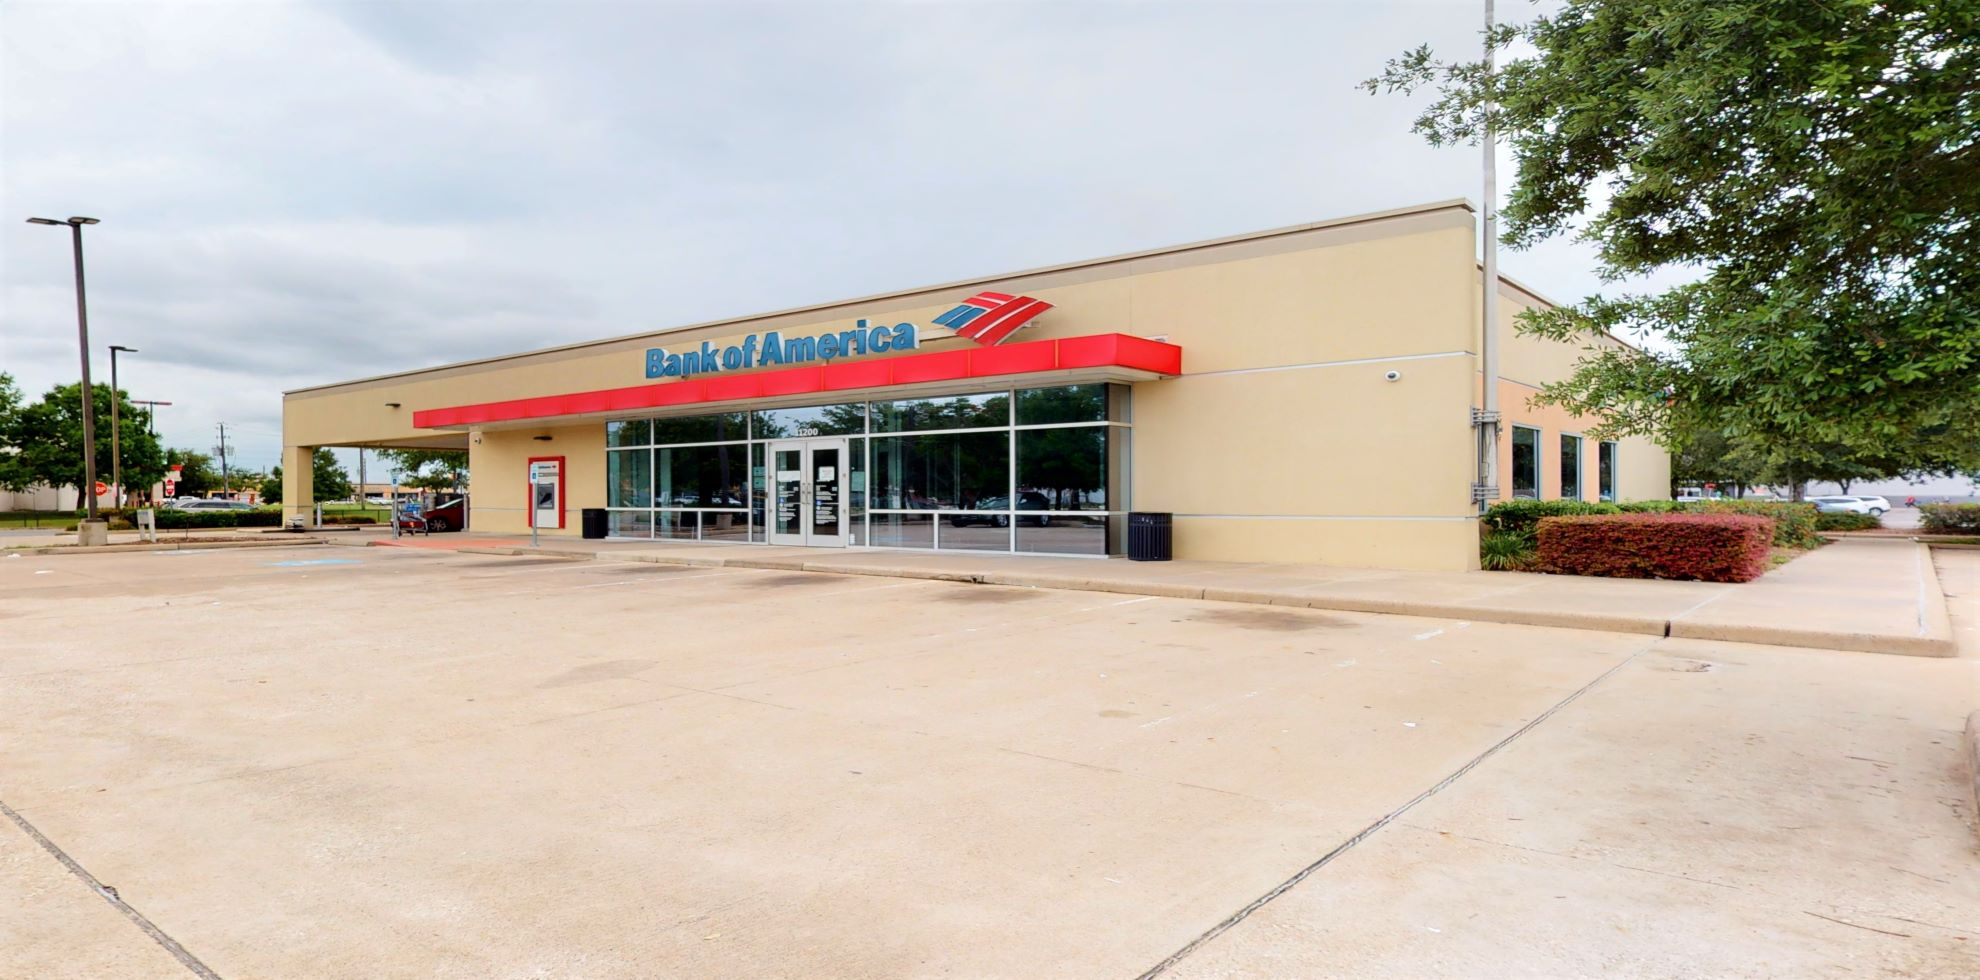 Bank of America financial center with drive-thru ATM and teller   11200 S Gessner Rd, Houston, TX 77071